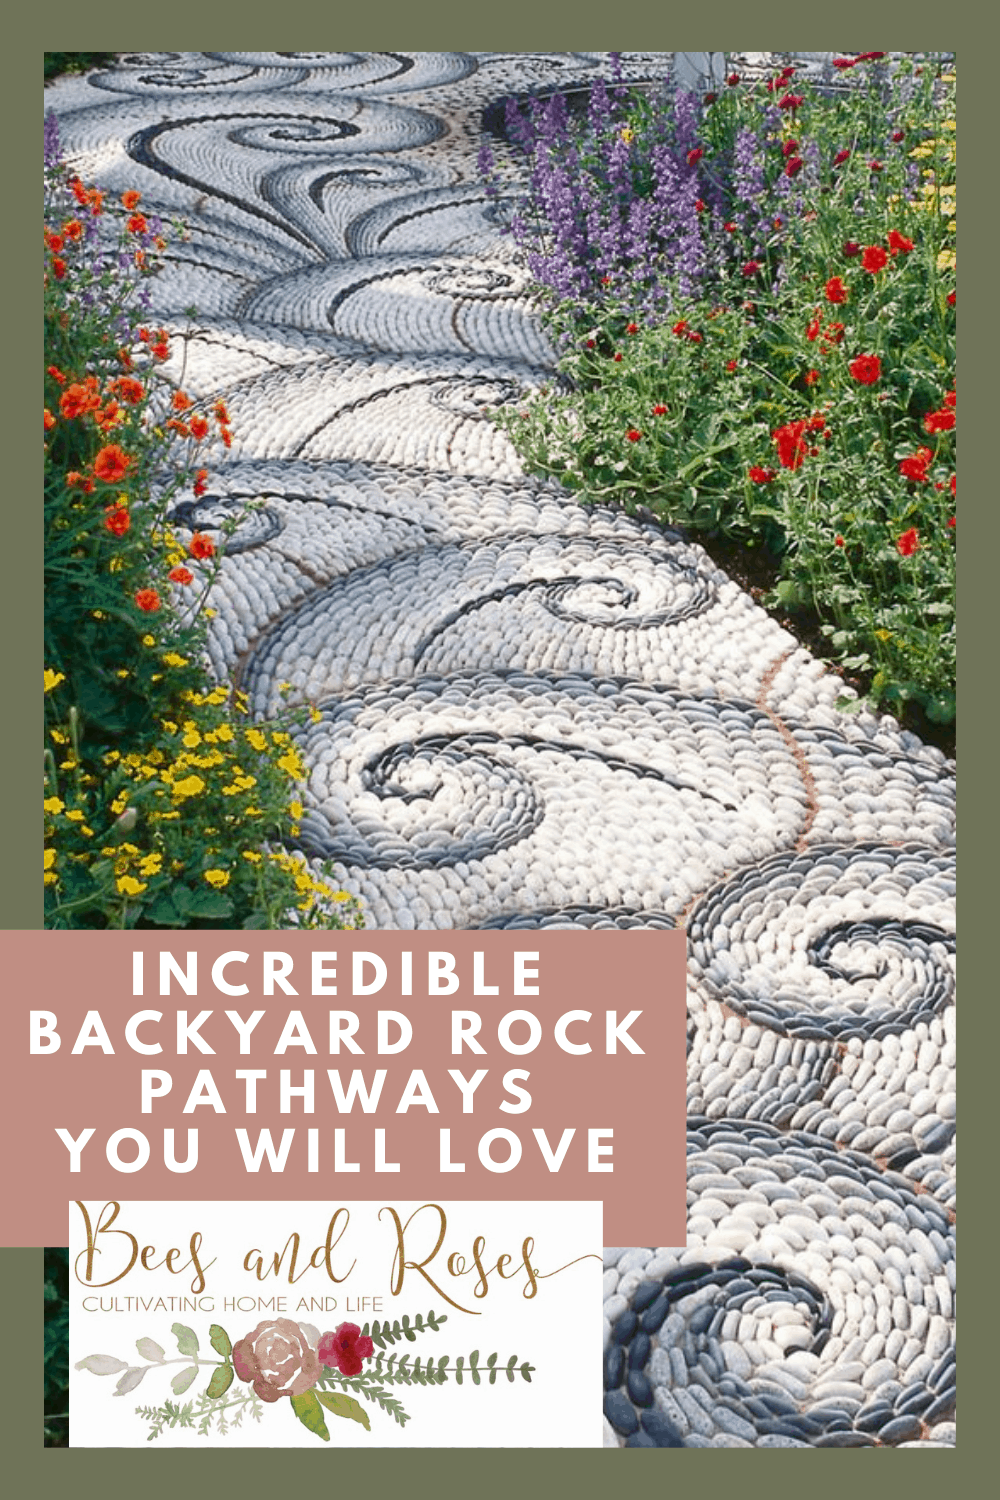 Beesandroses.com will help you master the art of gardening and landscaping! Find the best ideas to suit your home and property! Check out these amazing rock pathways that will perfectly compliment your home now.